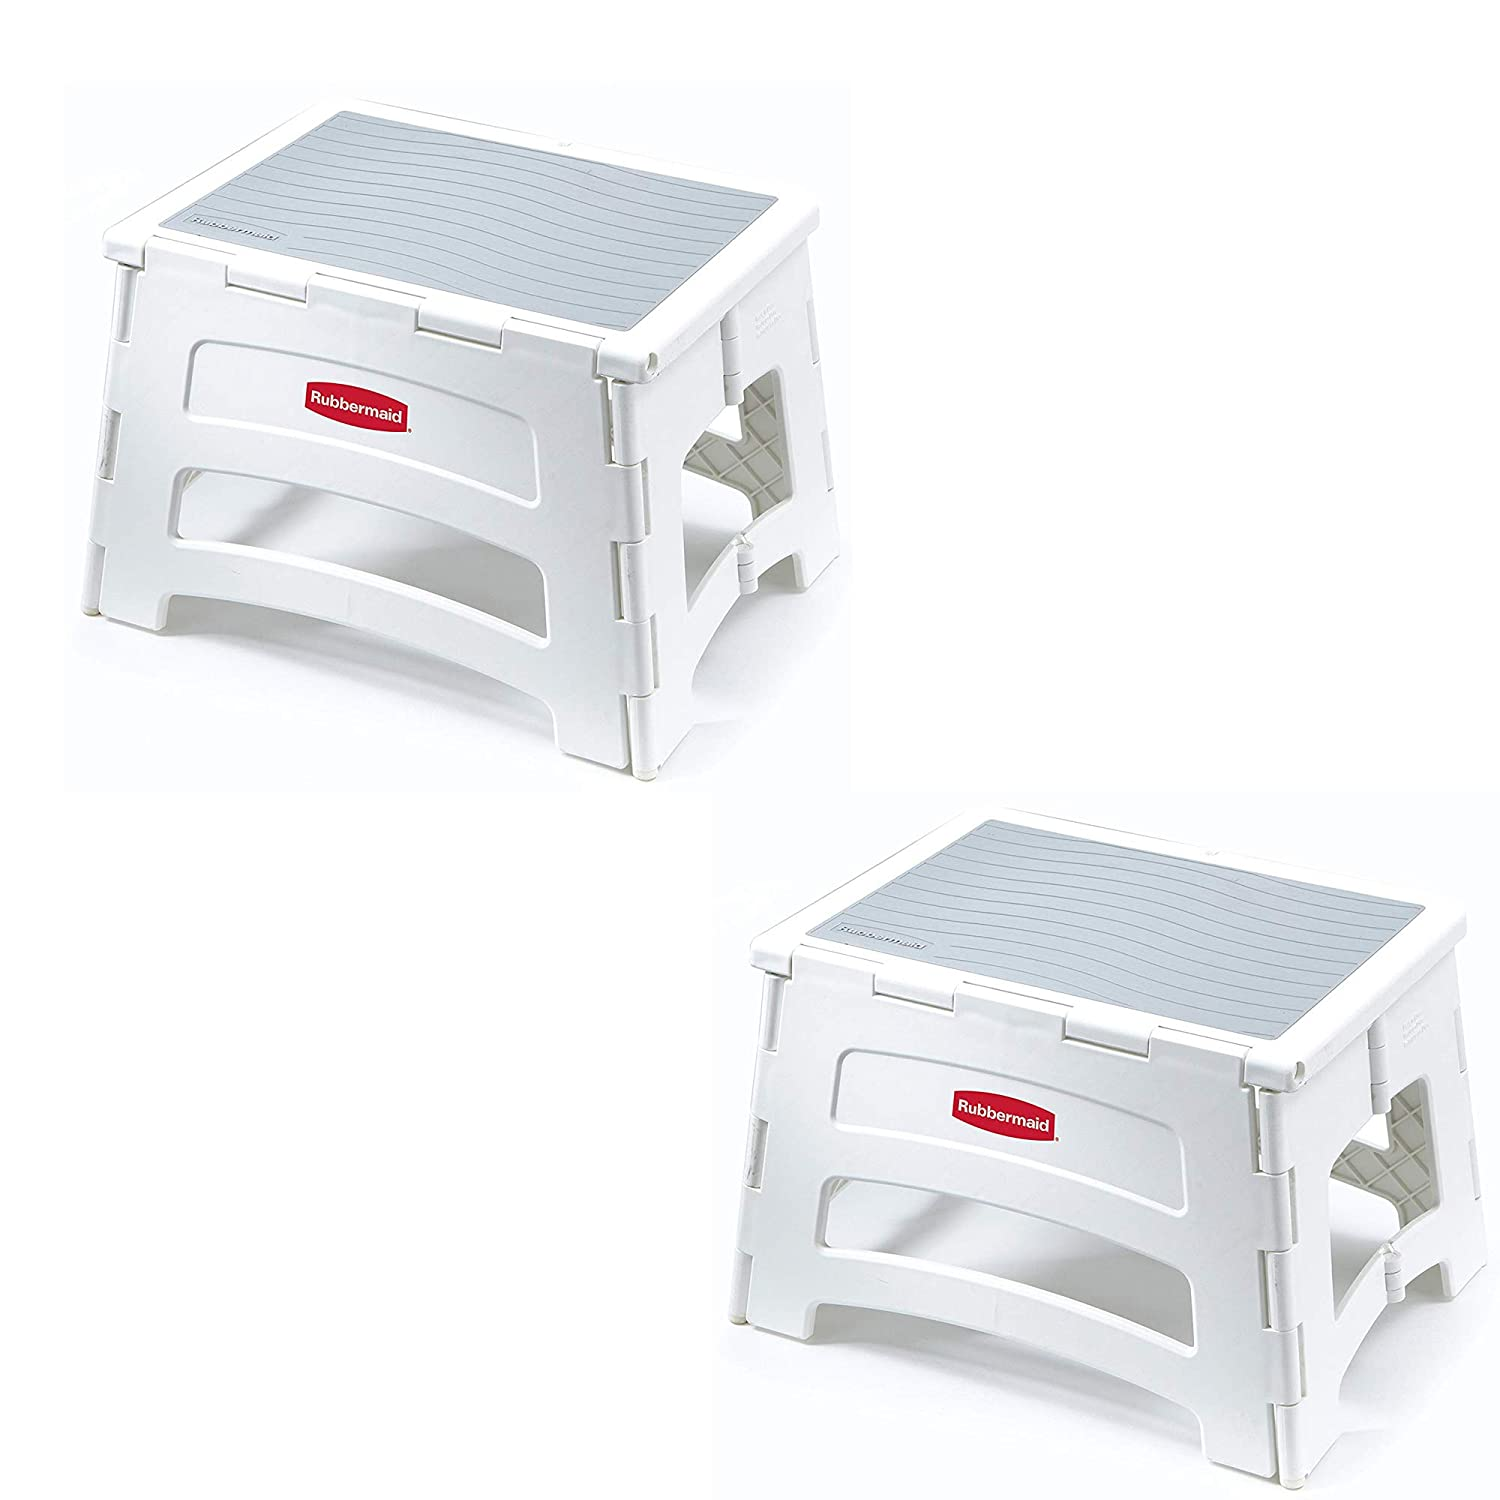 Wondrous Rubbermaid Rm Pl1W Folding 1 Step Plastic Stool 300 Pound Capacity White Set Of 2 Pabps2019 Chair Design Images Pabps2019Com